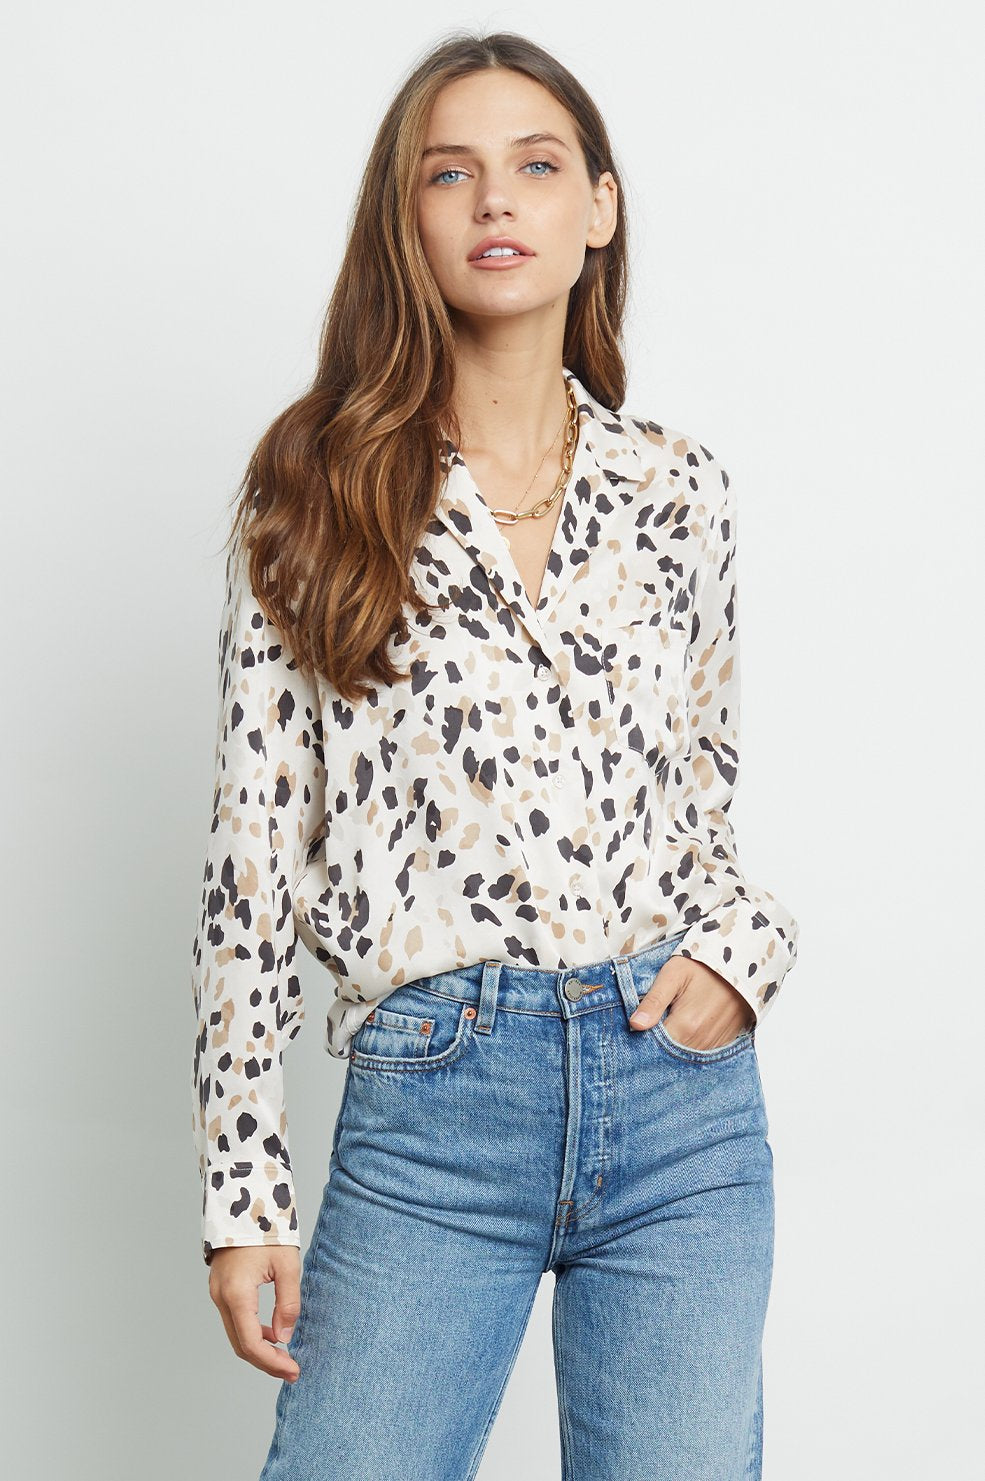 Rebel Shirt in Natural Abstract Animal